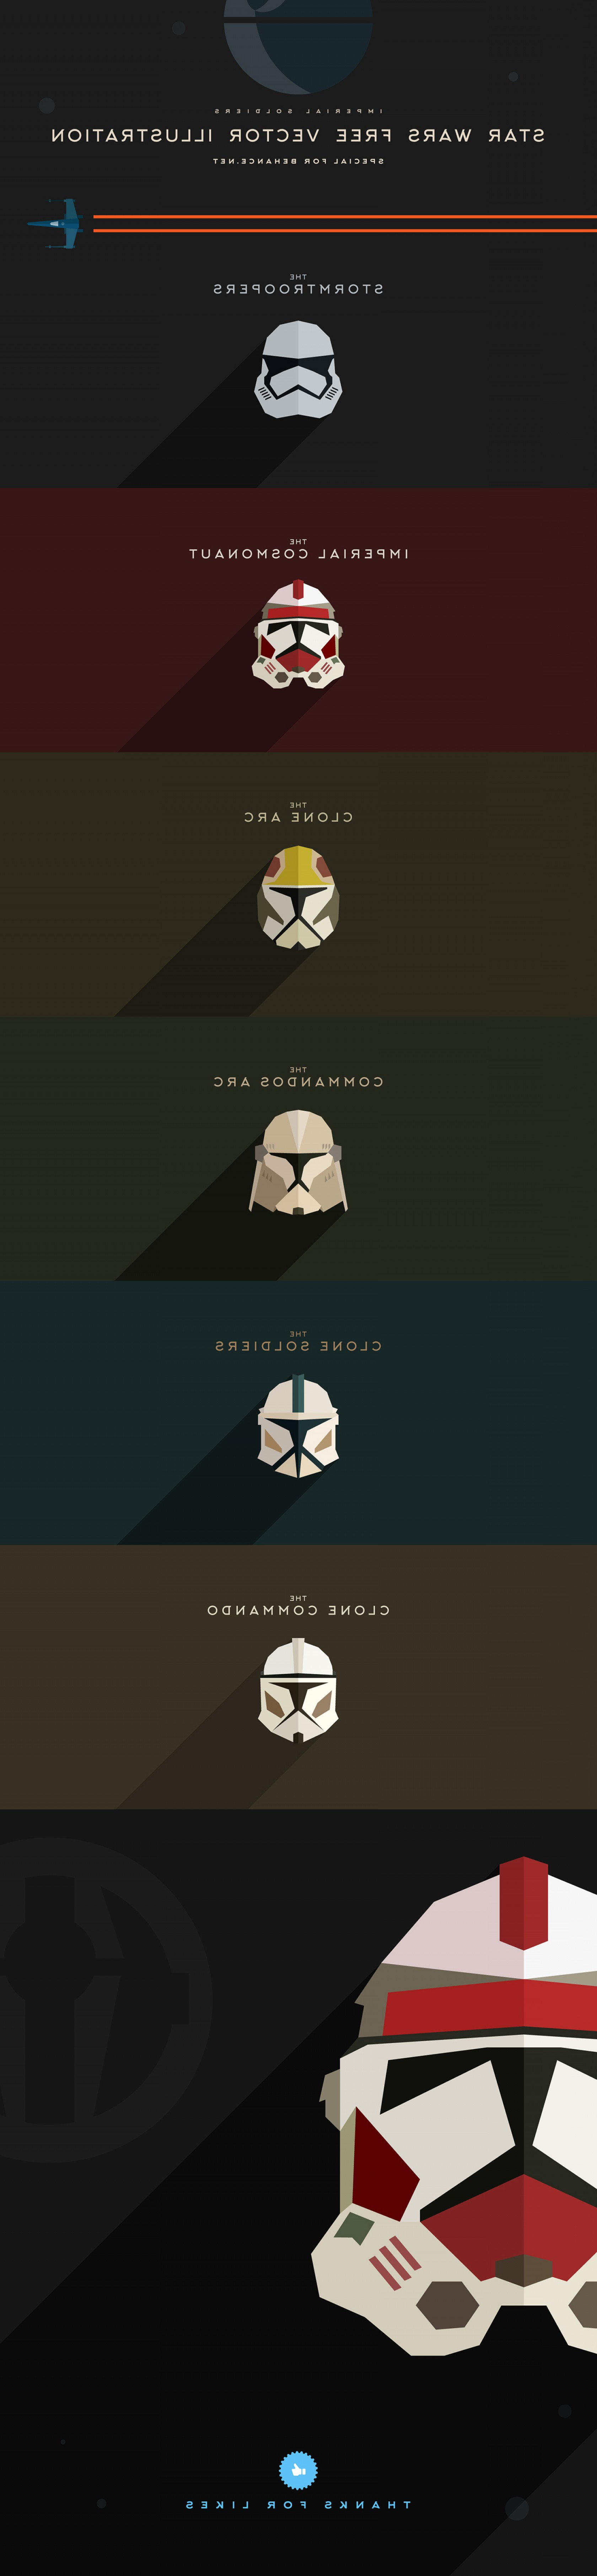 Clone Trooper Vector Art: Star Wars Free Vector Illustration Imperial Soldiers